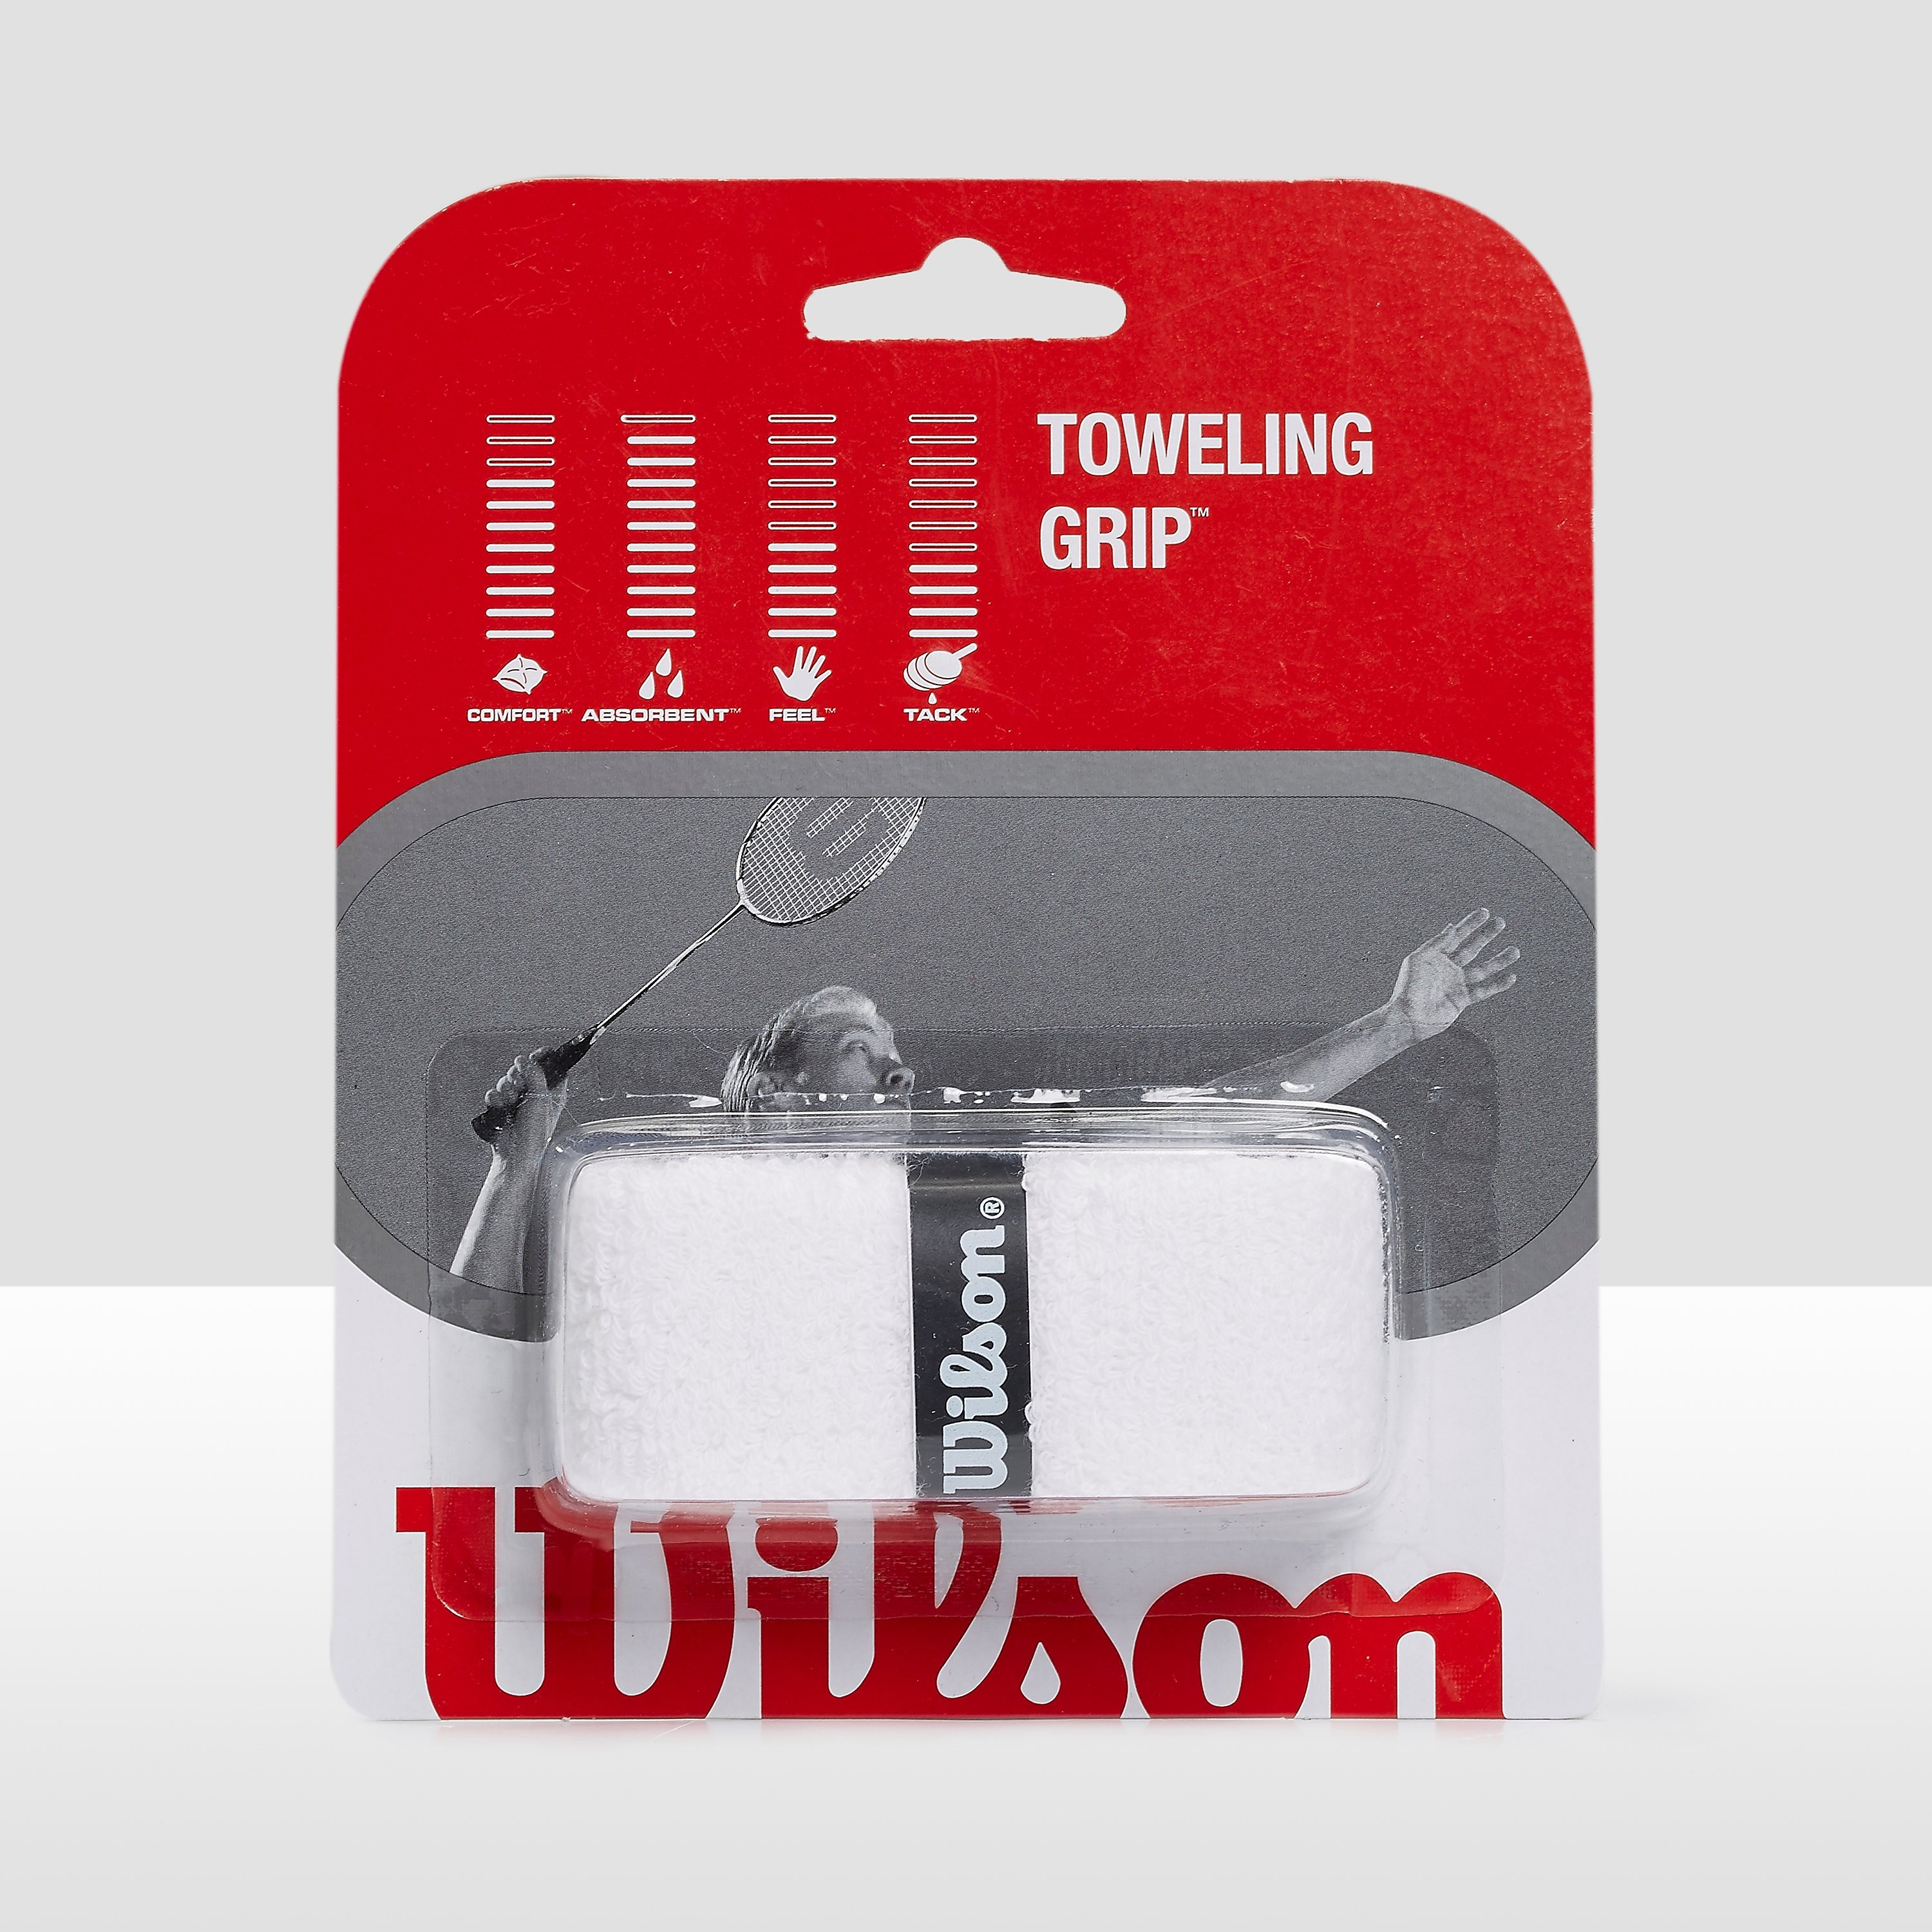 Wilson TOWELING GRIP